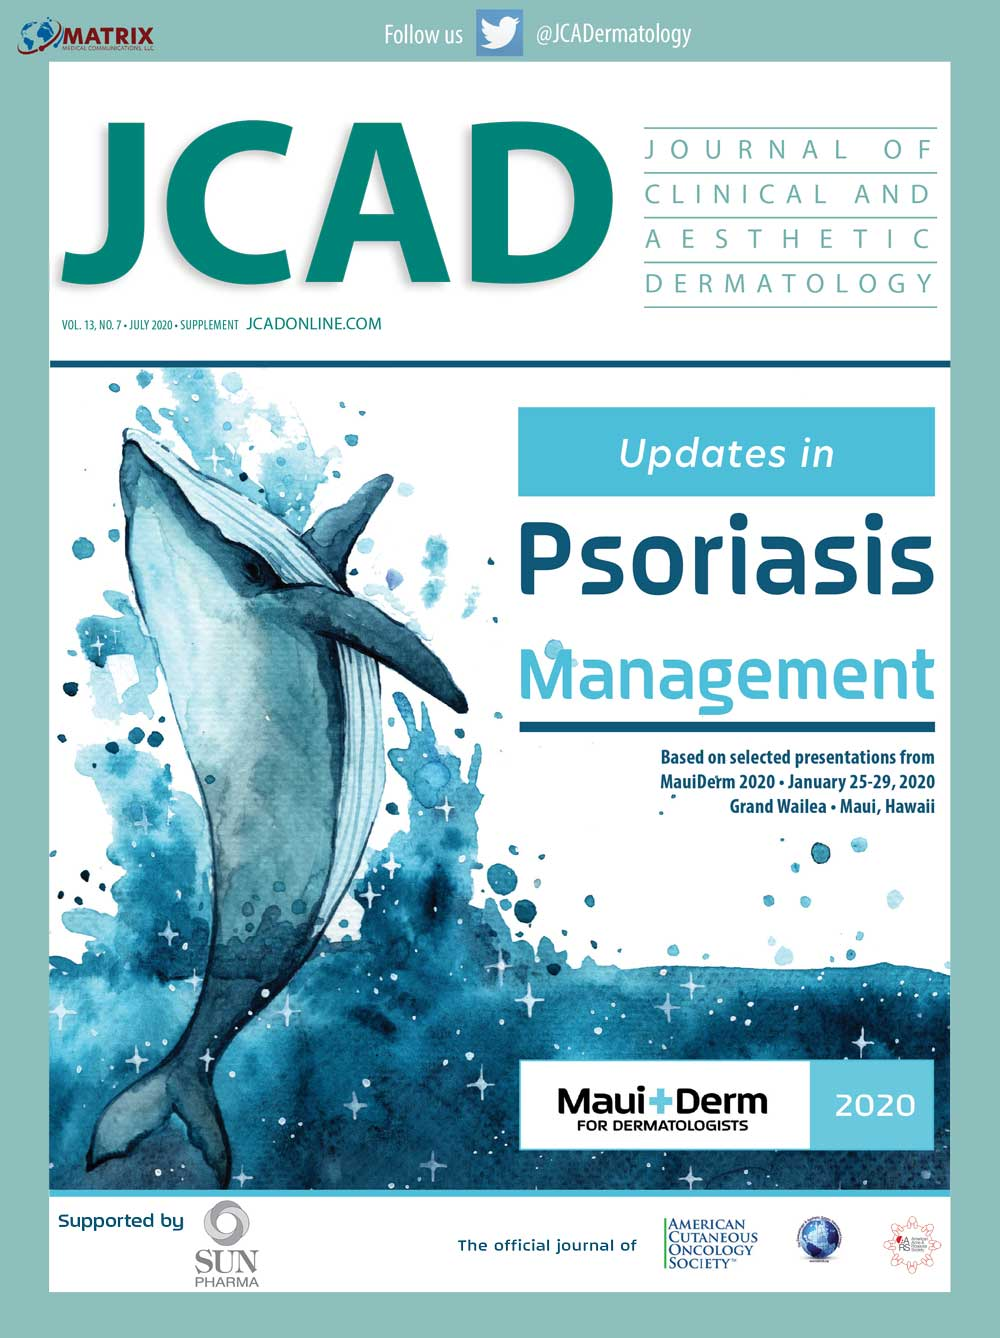 Updates in Psoriasis Management: Based on Select Presentations from Maui Derm 2020